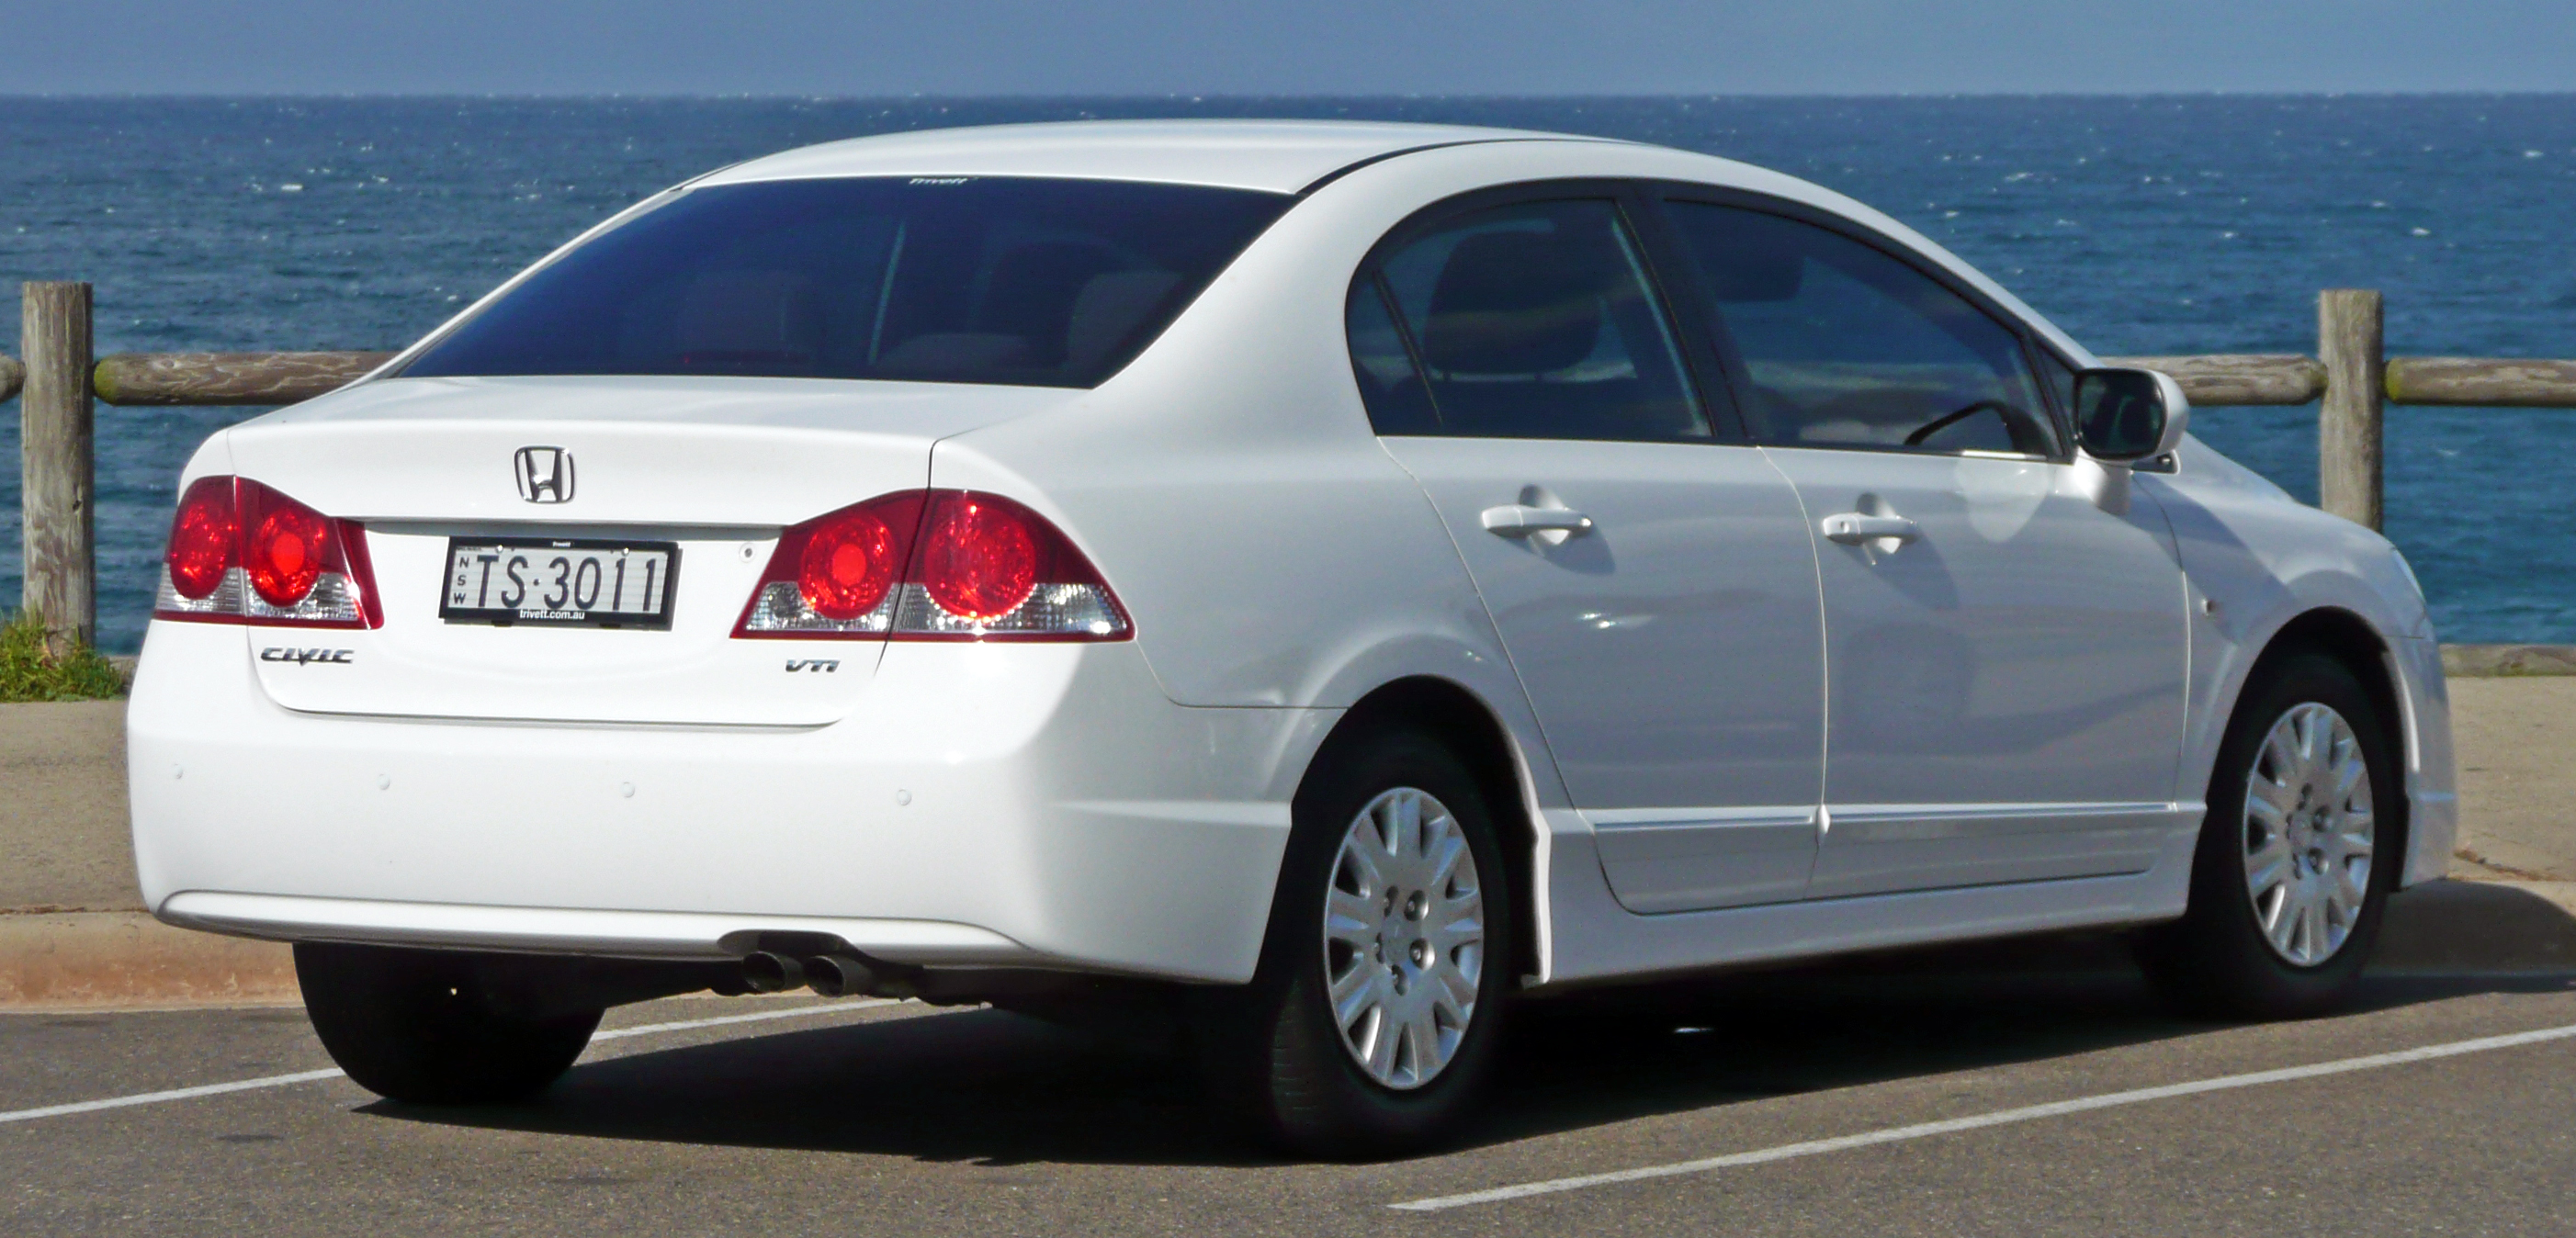 honda civic viii coupe 2009 images #5